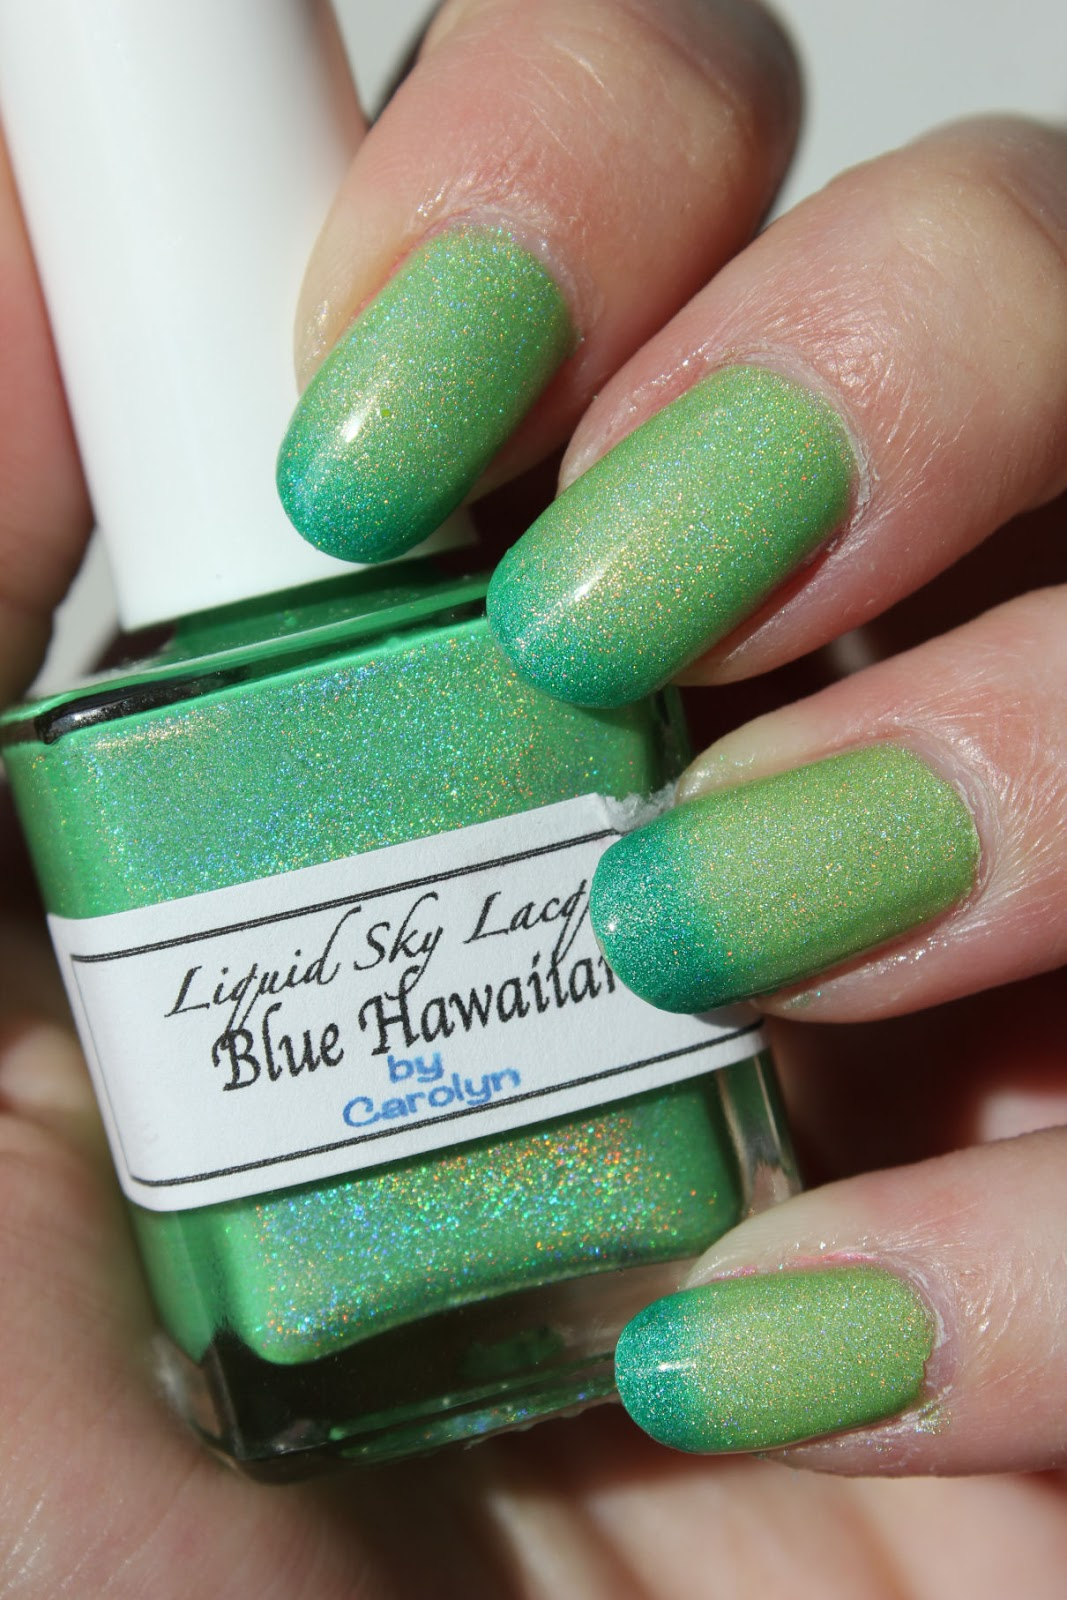 http://lacquediction.blogspot.de/2014/05/liquid-sky-lacquer-blue-hawaiian.html